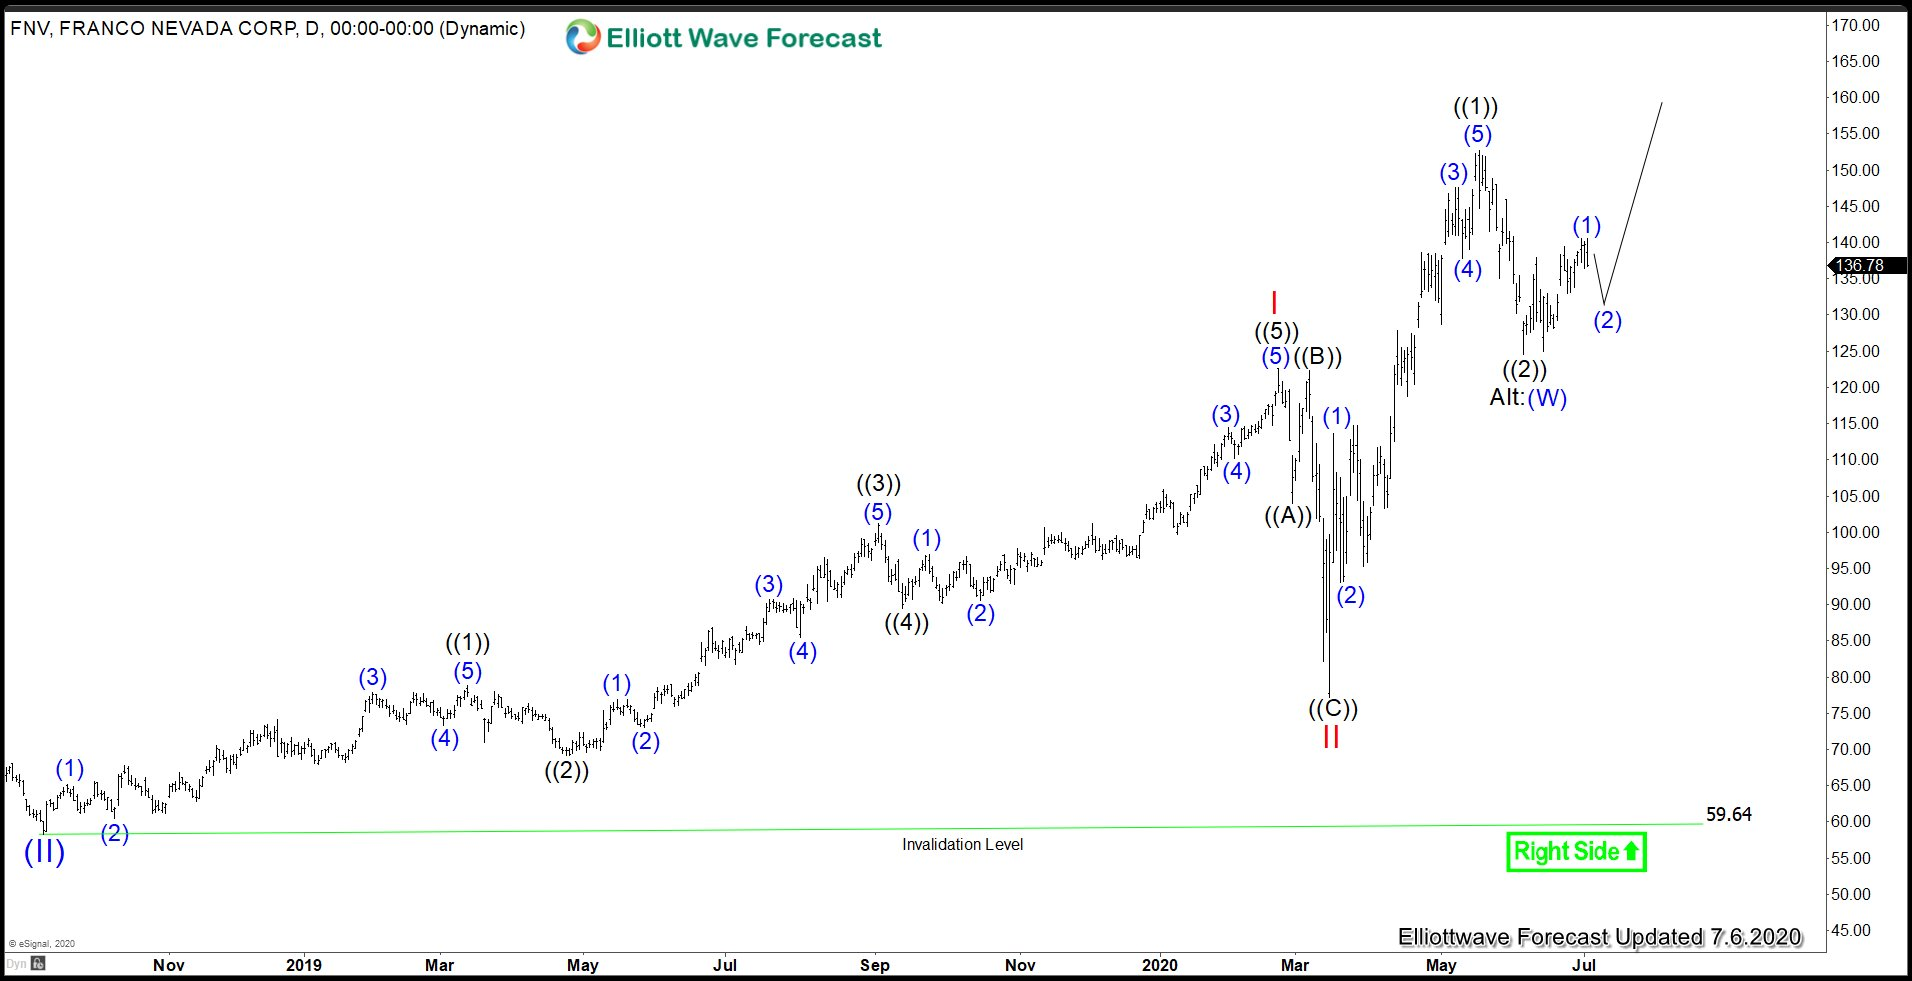 Elliott Wave View: Franco Nevada Corp (FNV) Impulsive Move Higher